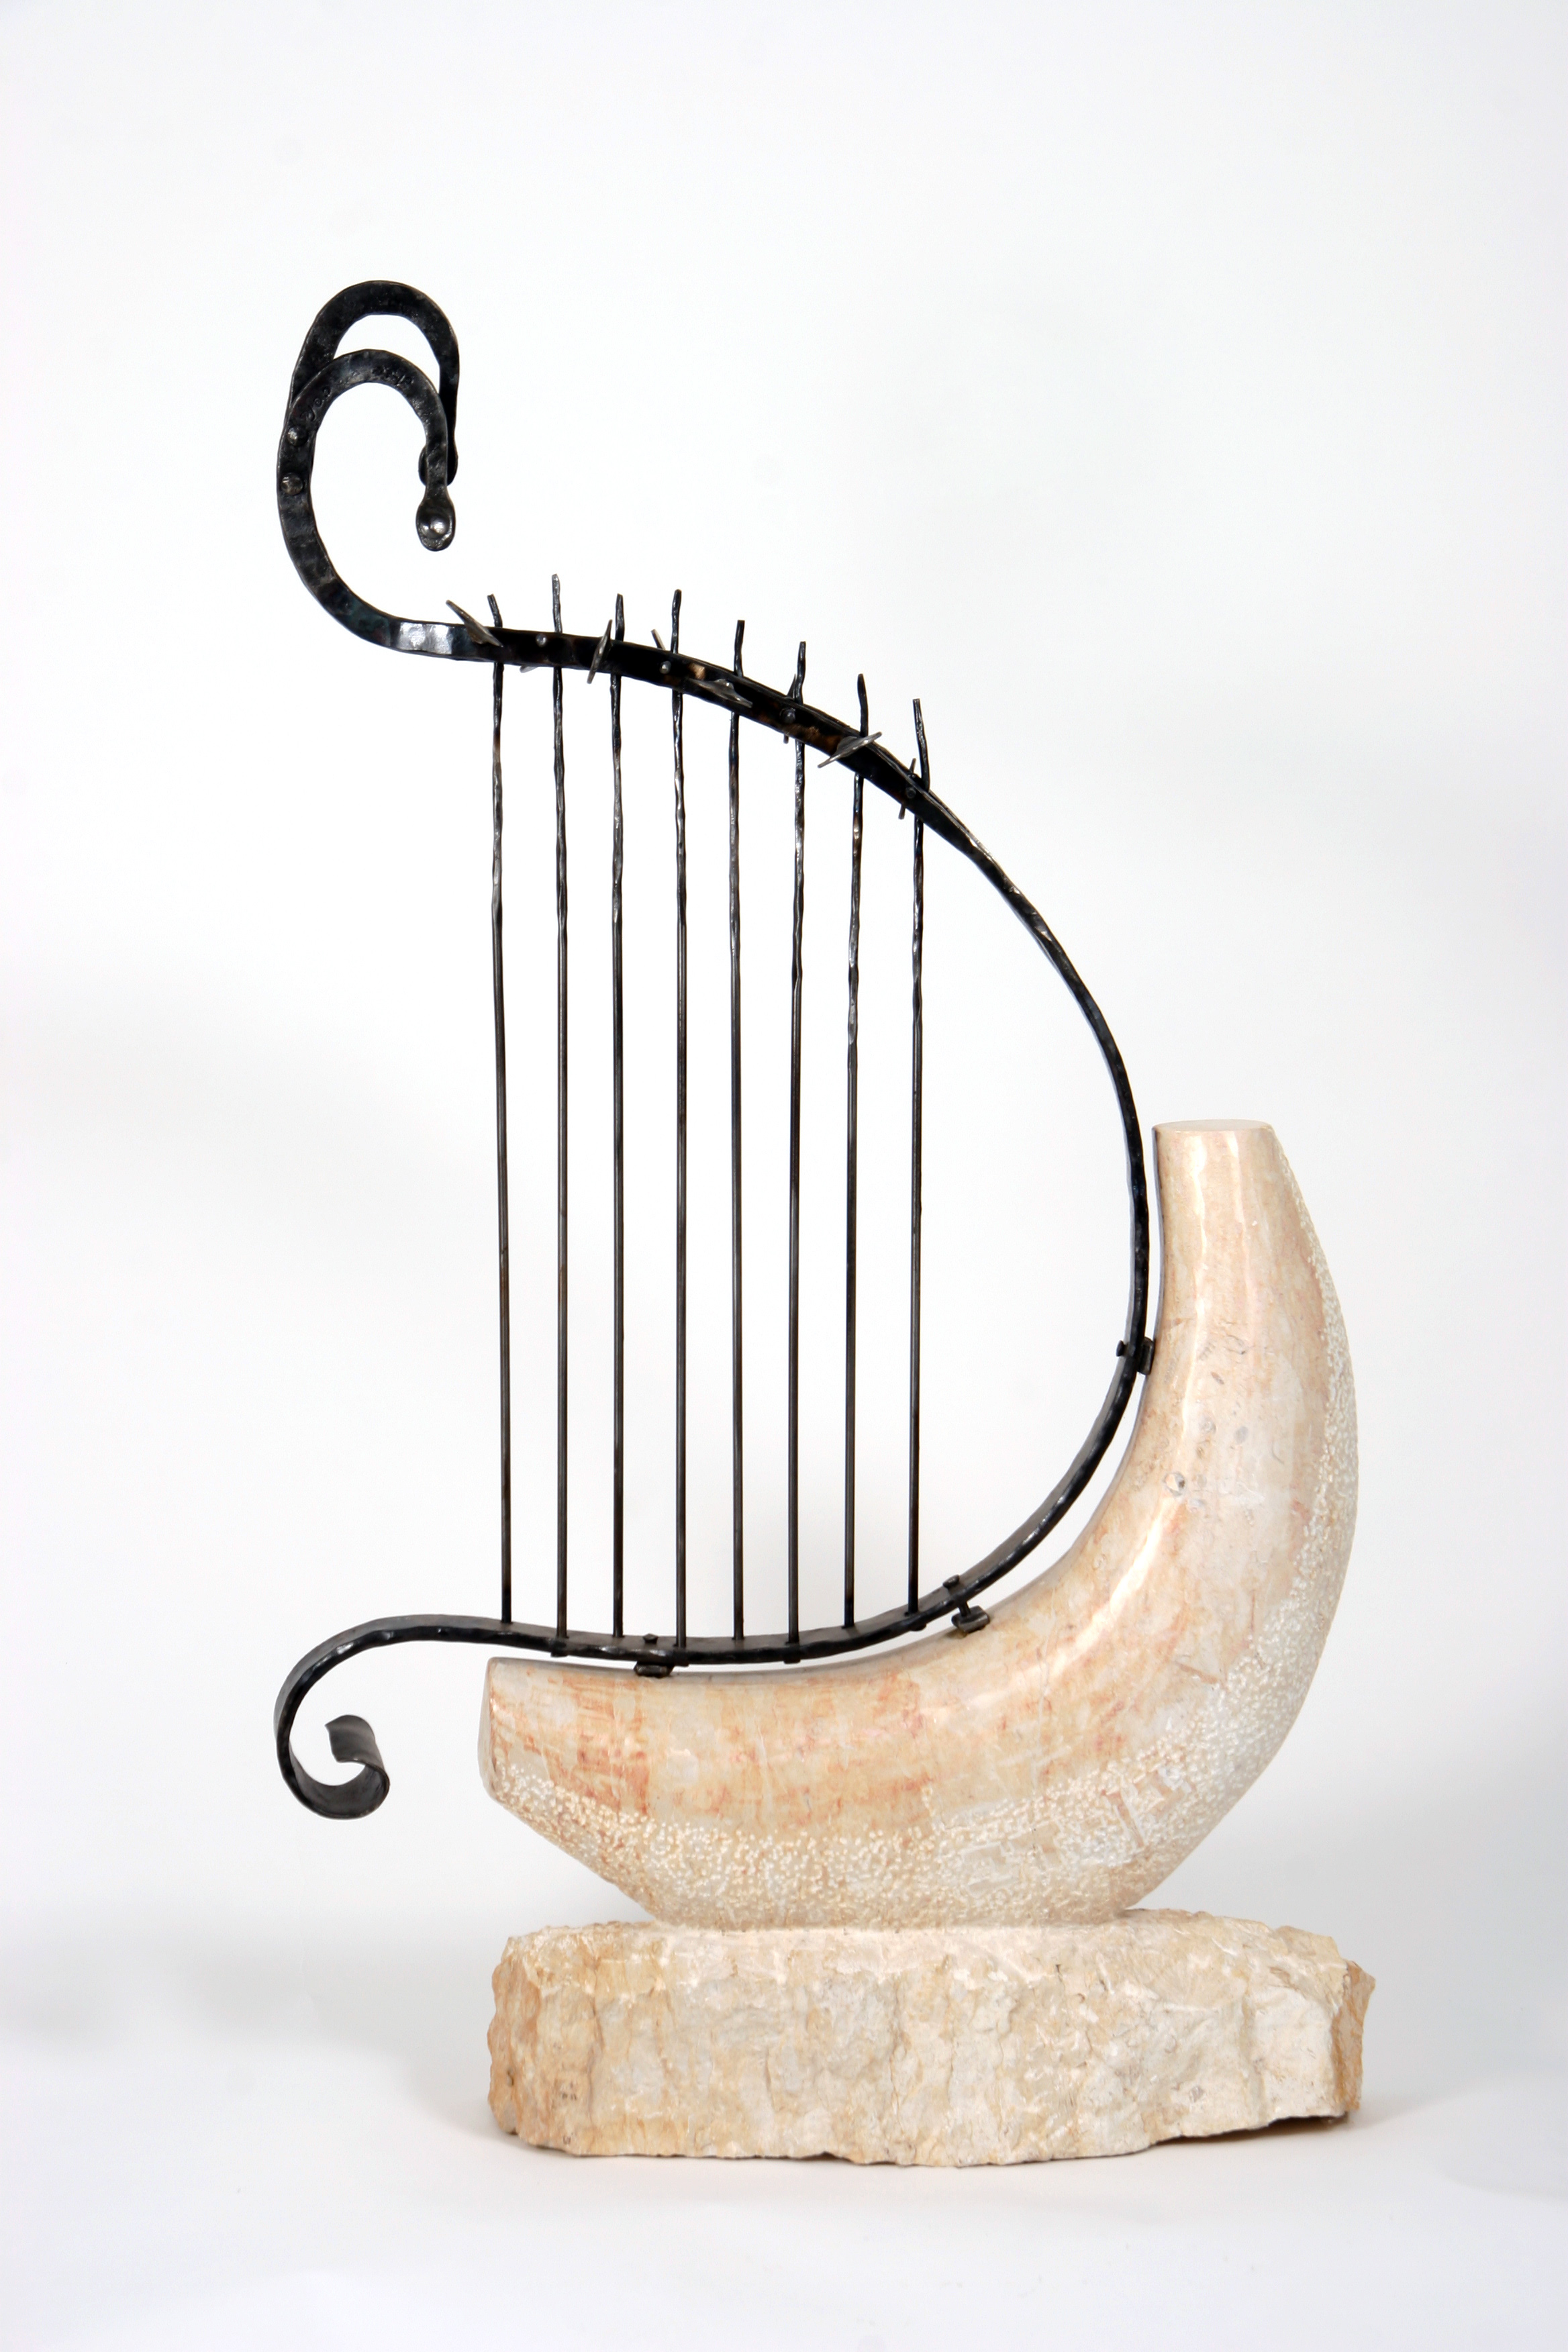 Harp Sculpture of Jerusalem Stone & Iron